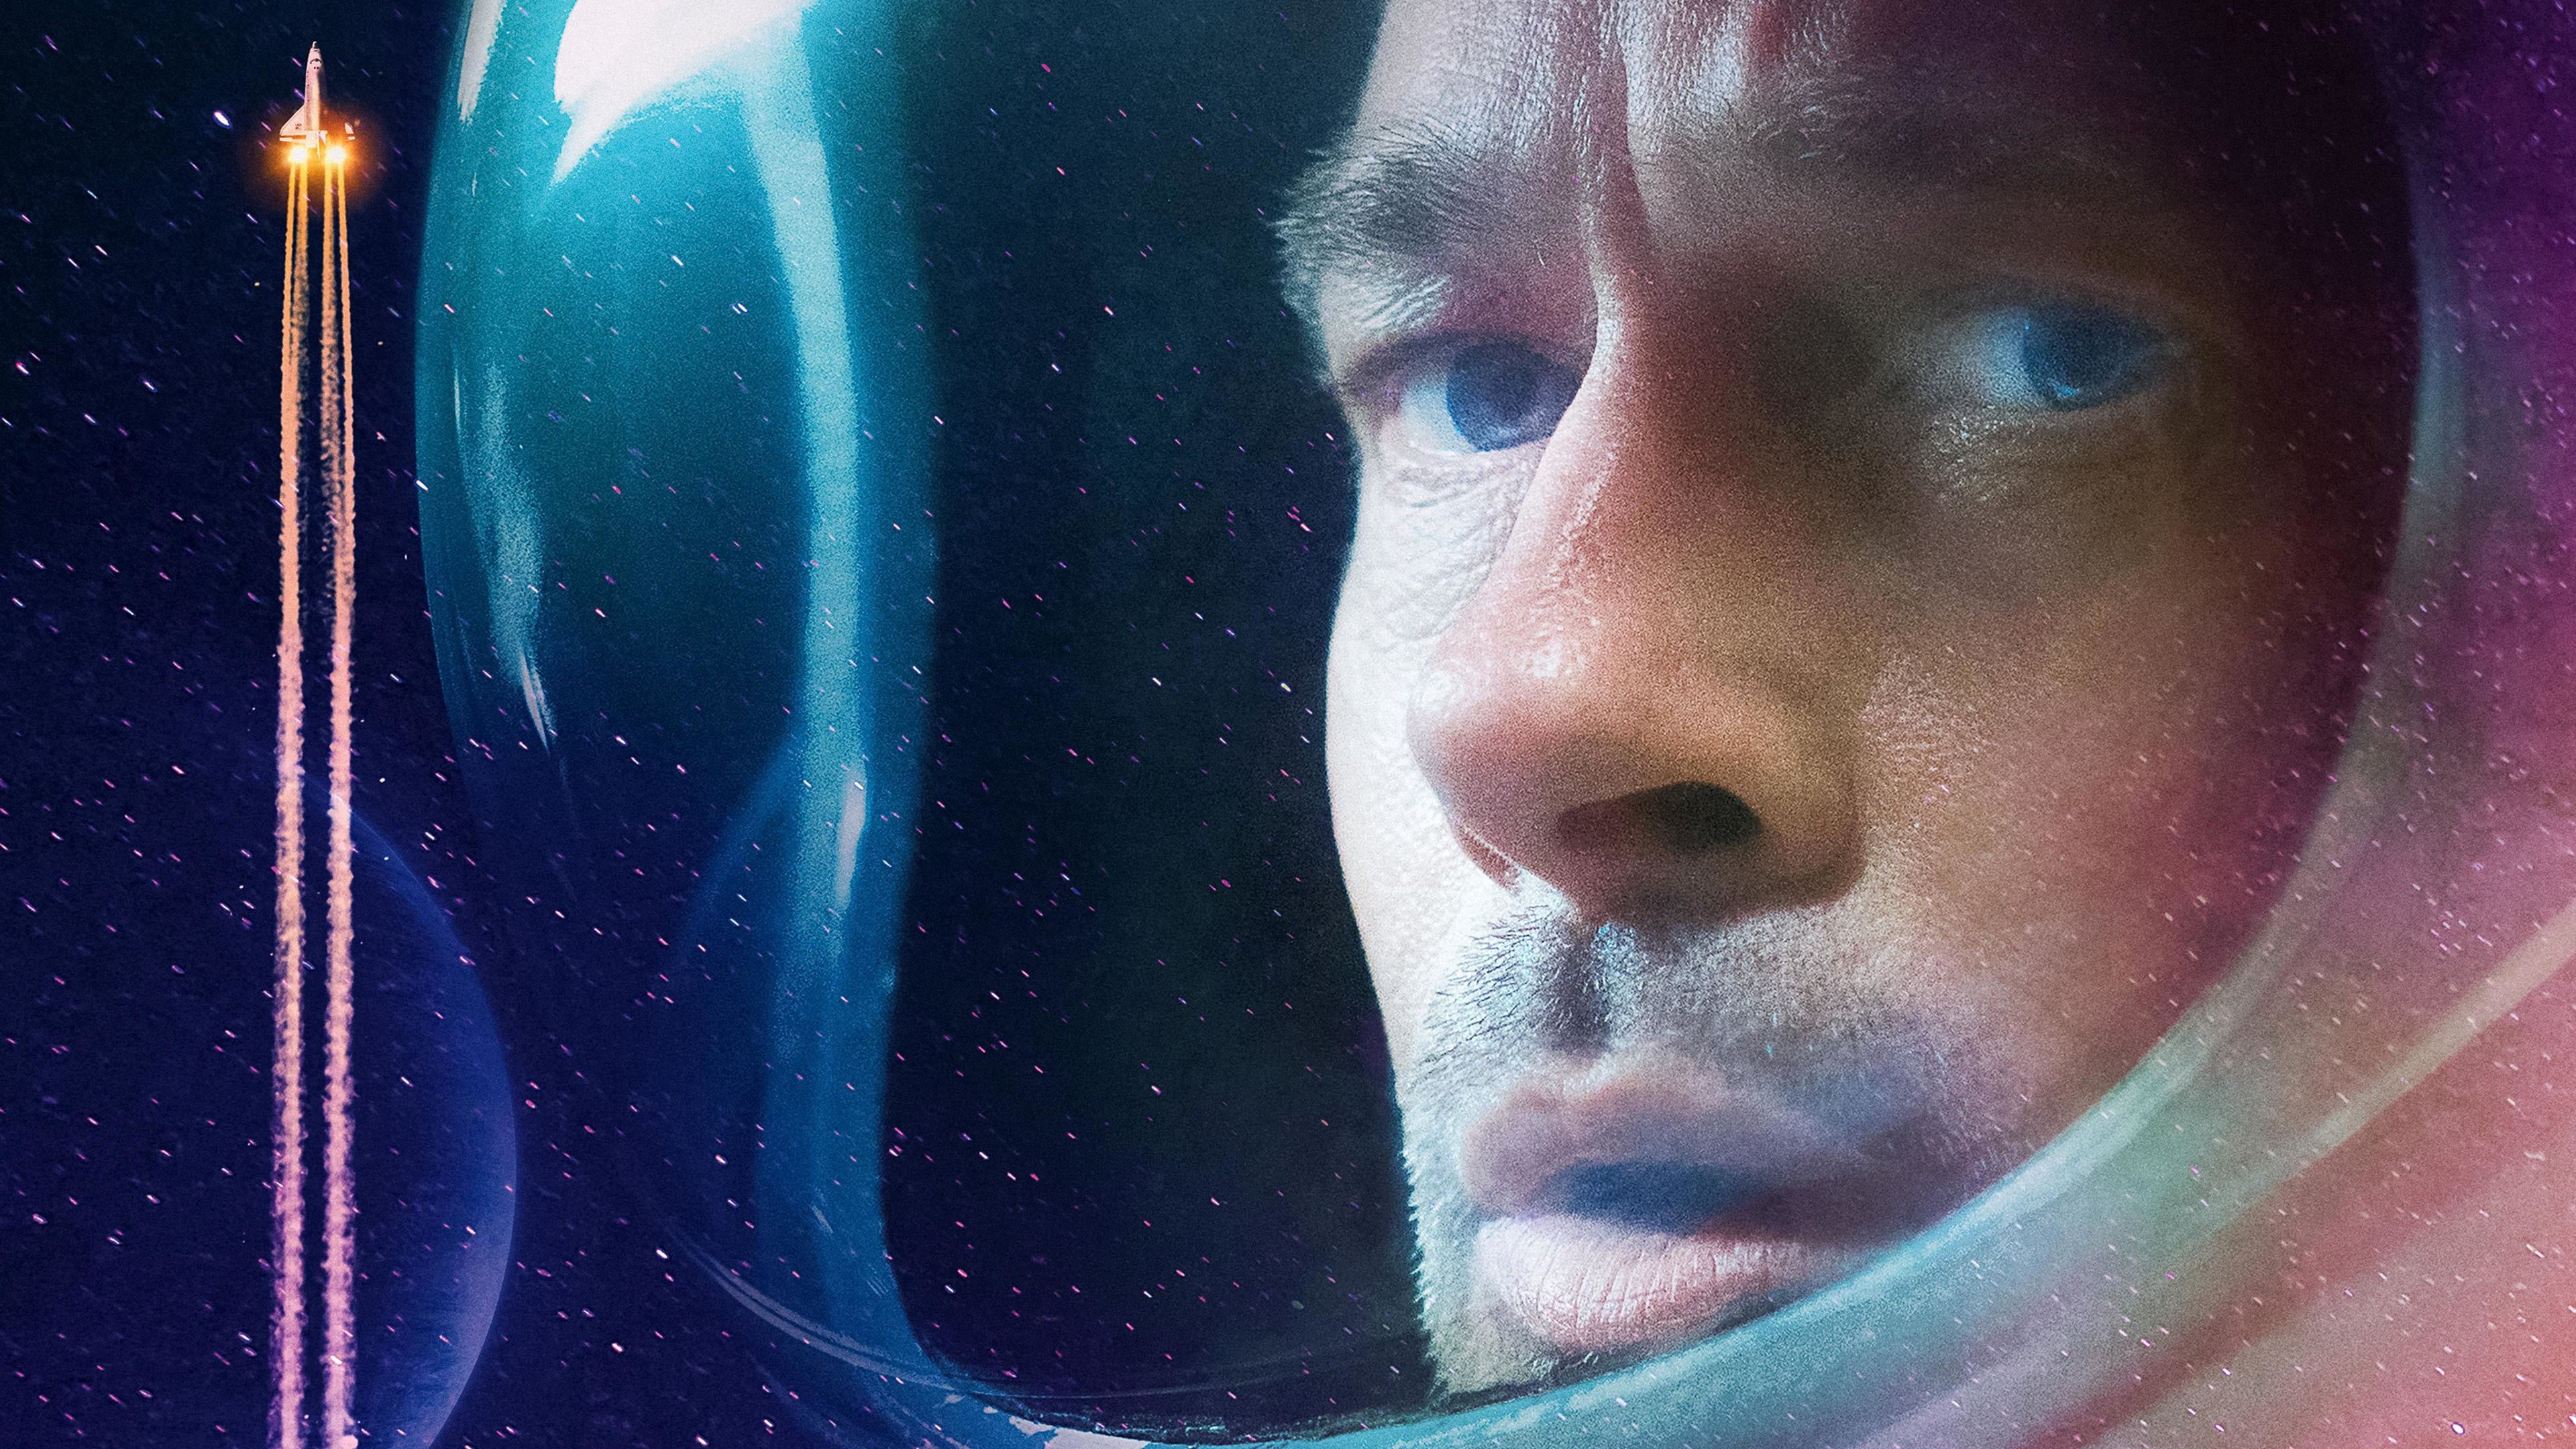 'Ad Astra' review: A solid, character-driven space journey